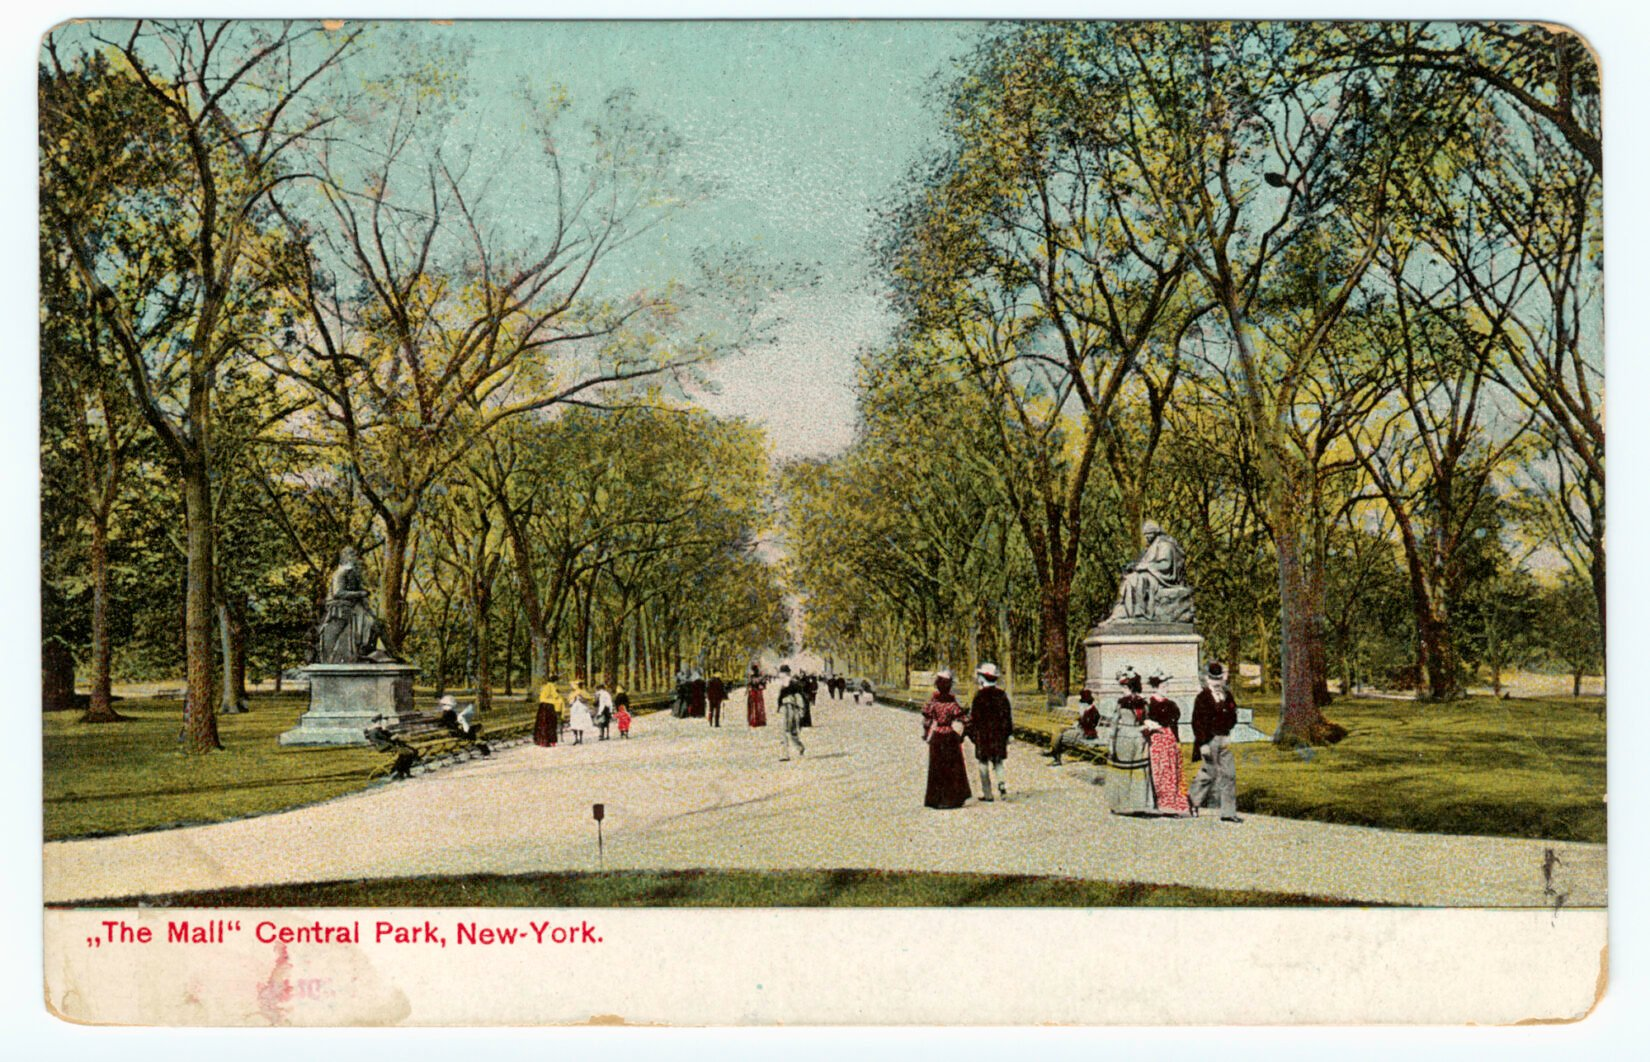 Colorized postcard from the turn of the century looking down the length of the Mall